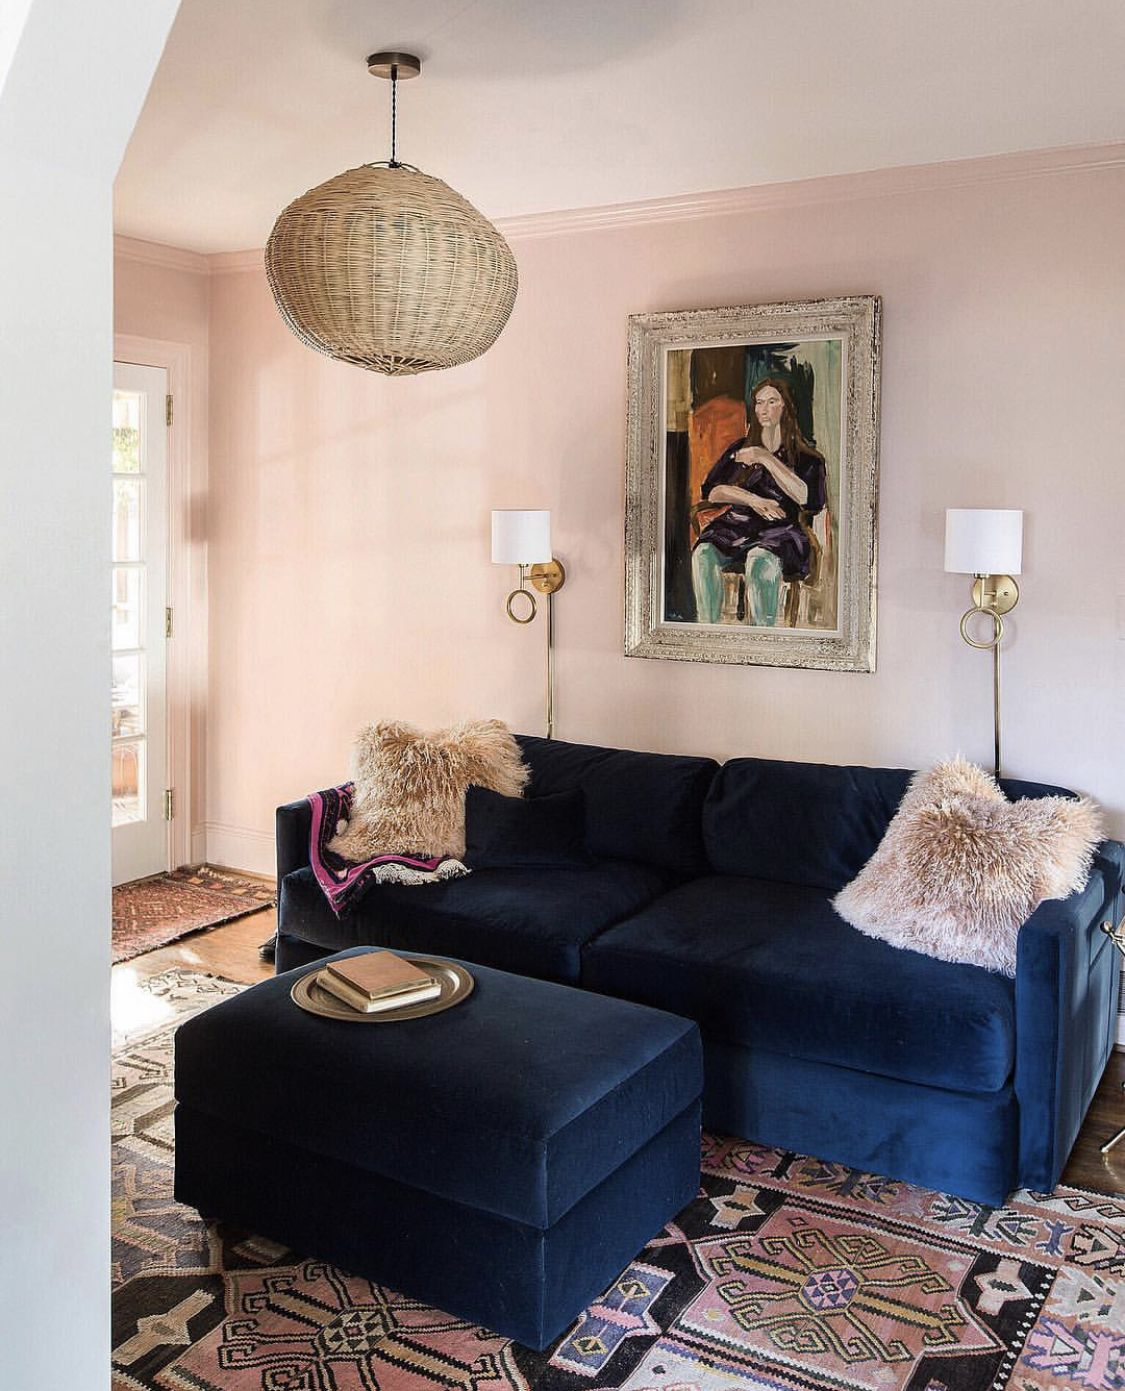 Urban Sofa Barneveld Pin By Colleen Keeley On Uws Home Decor House Design Blush